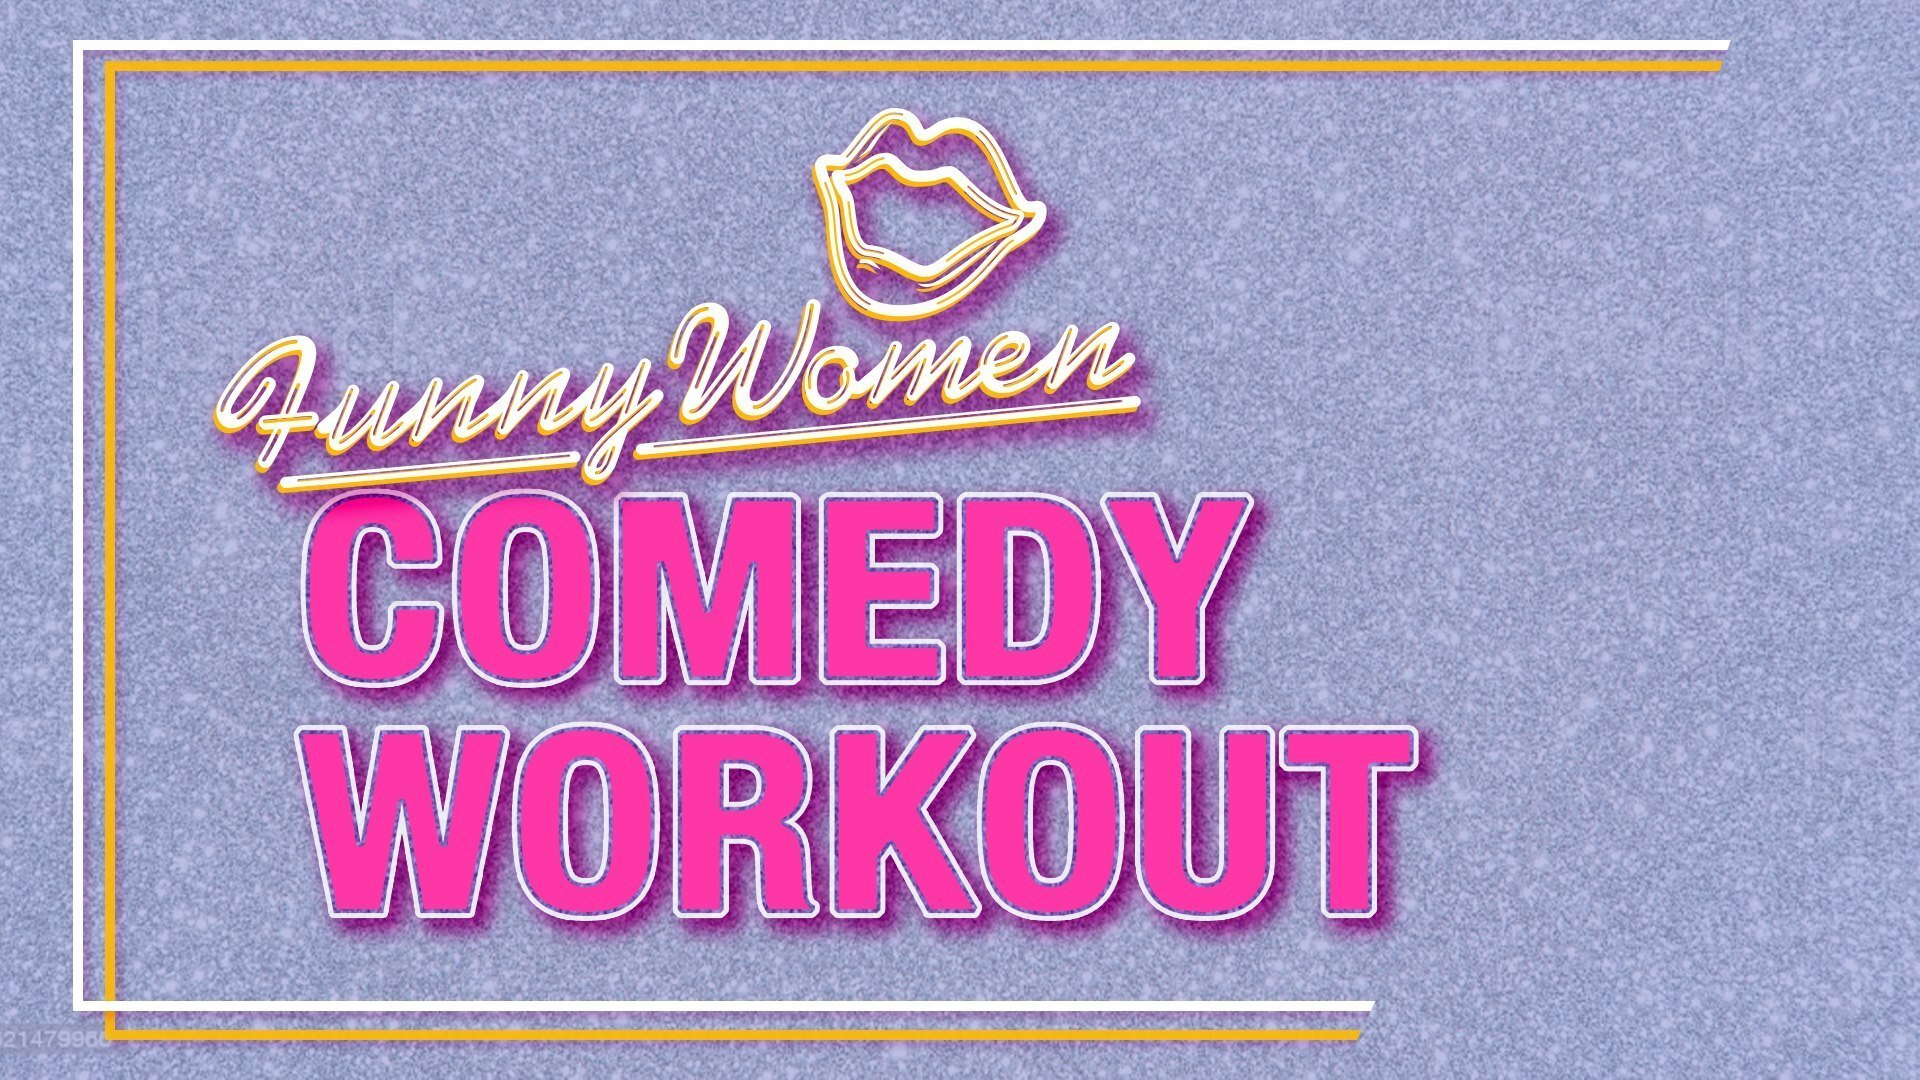 Funny Women invites you to Comedy Workout February – a varied programme designed to bring the community together, whether it's to warm up our creative brains or flex our chuckle muscles.